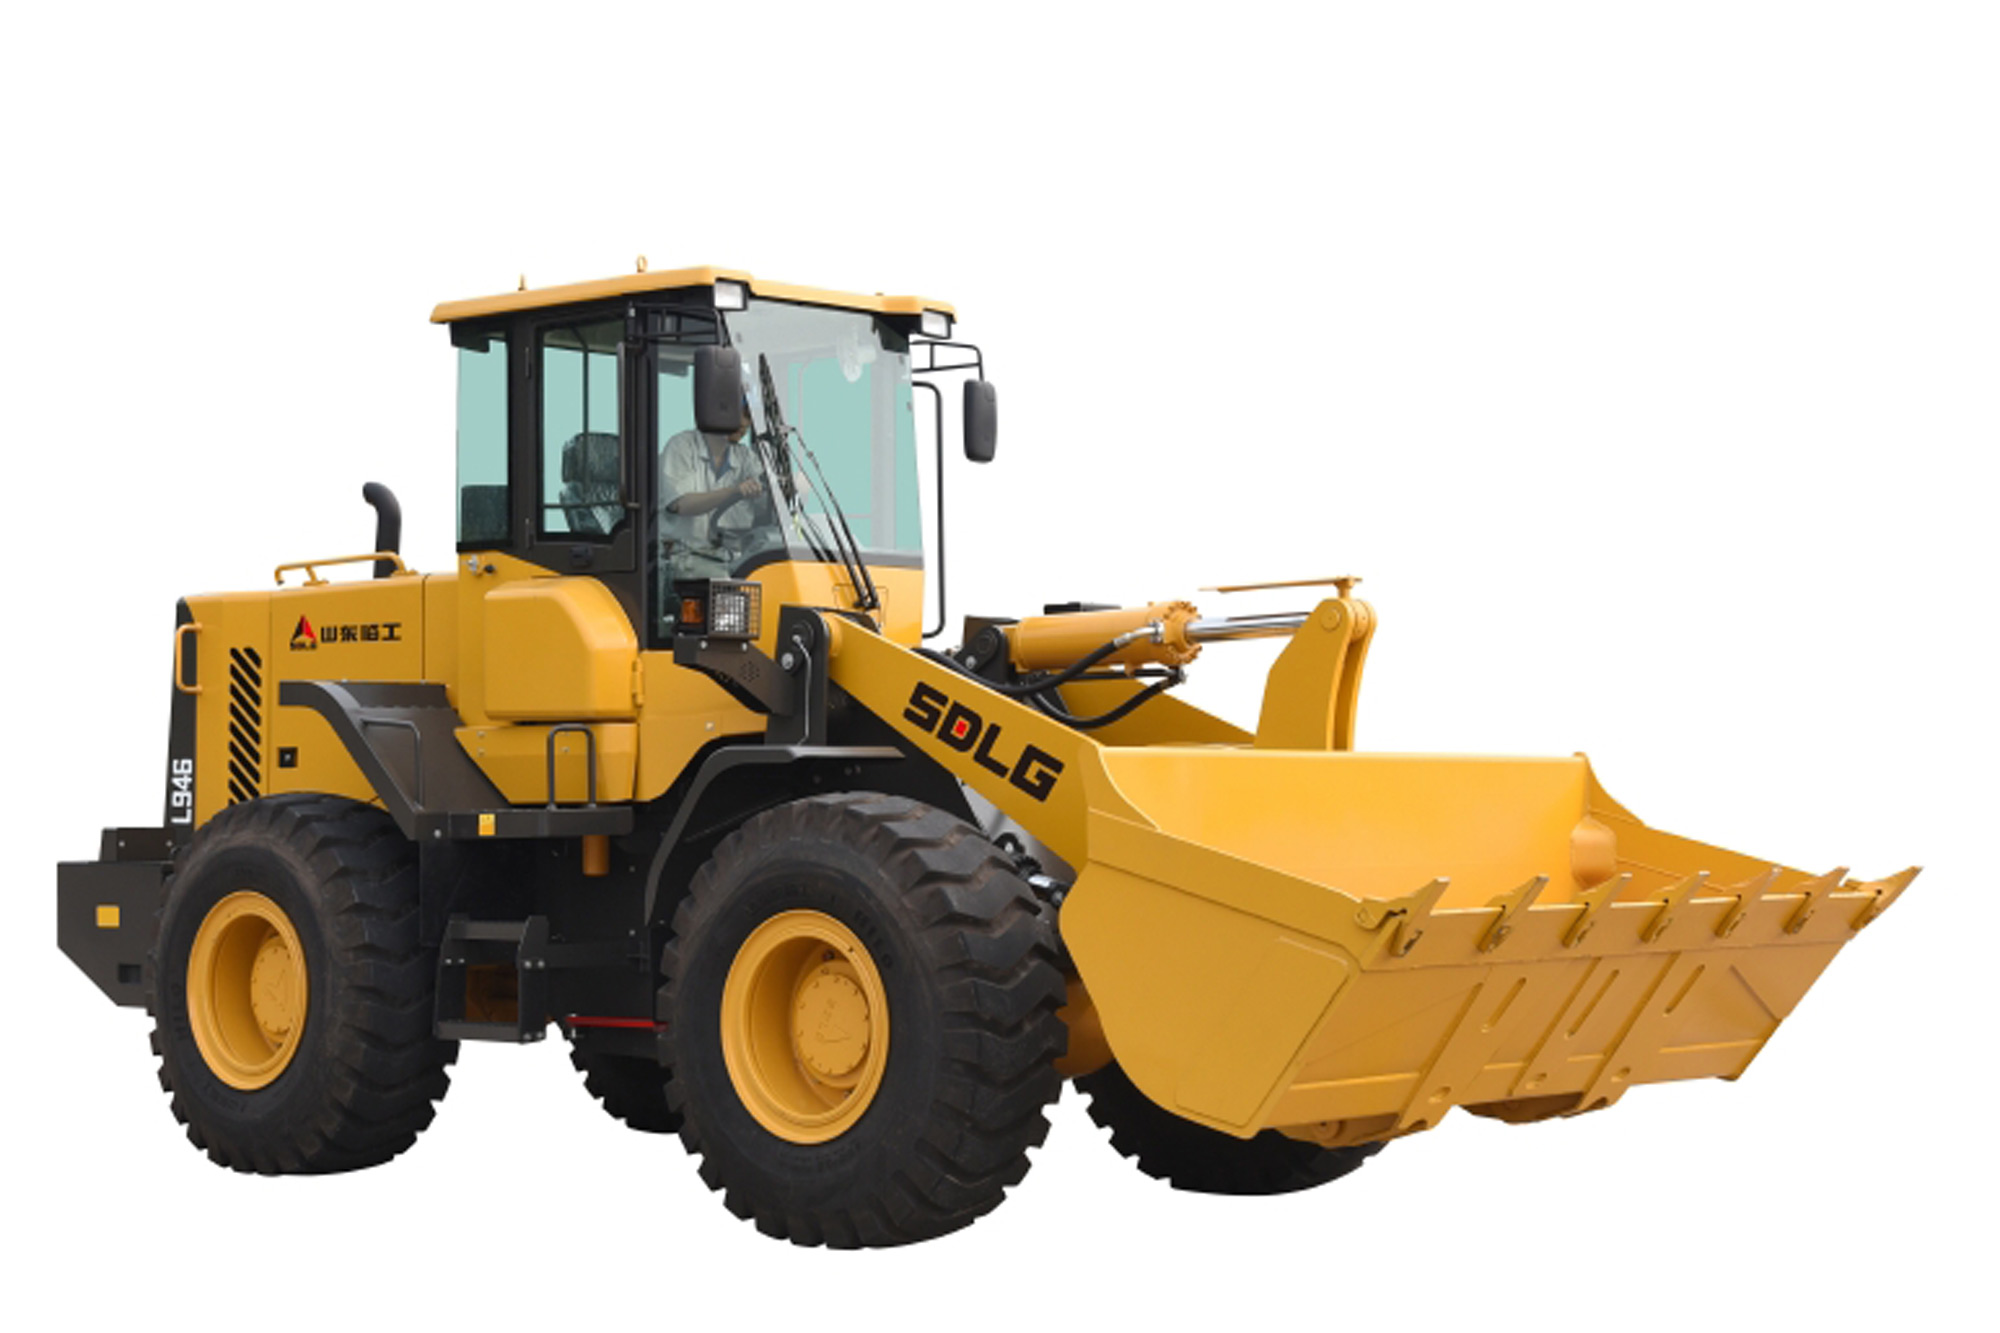 SDLG introduces 2 smaller-capacity wheel loaders in India